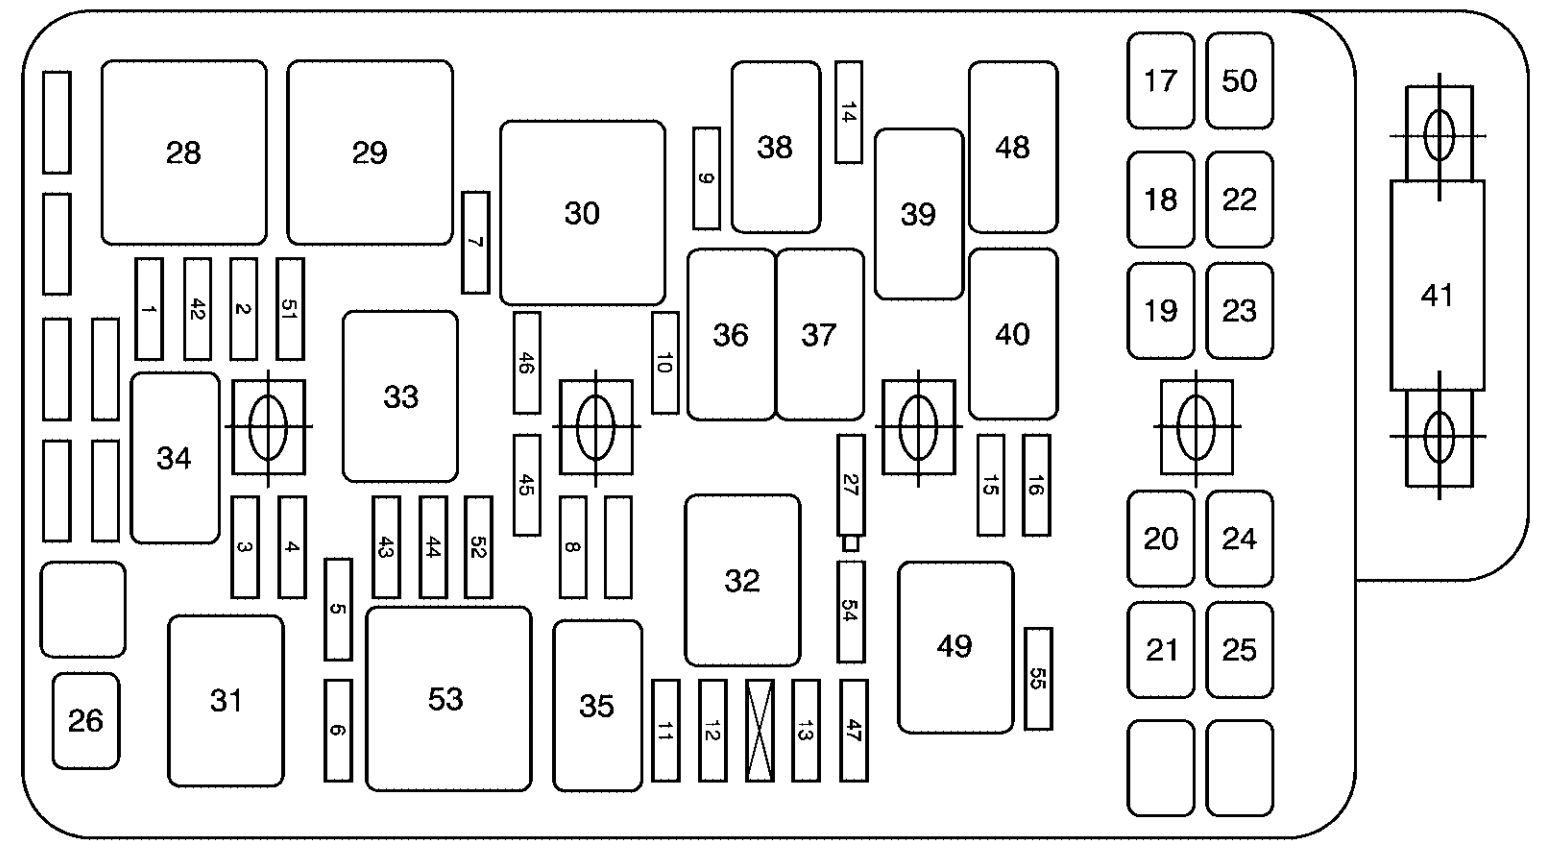 pontiac g6 fuse engine compartment g6 fuse box fuse diagram for 2006 pontiac grand am \u2022 wiring 2005 pontiac g6 fuse box at creativeand.co